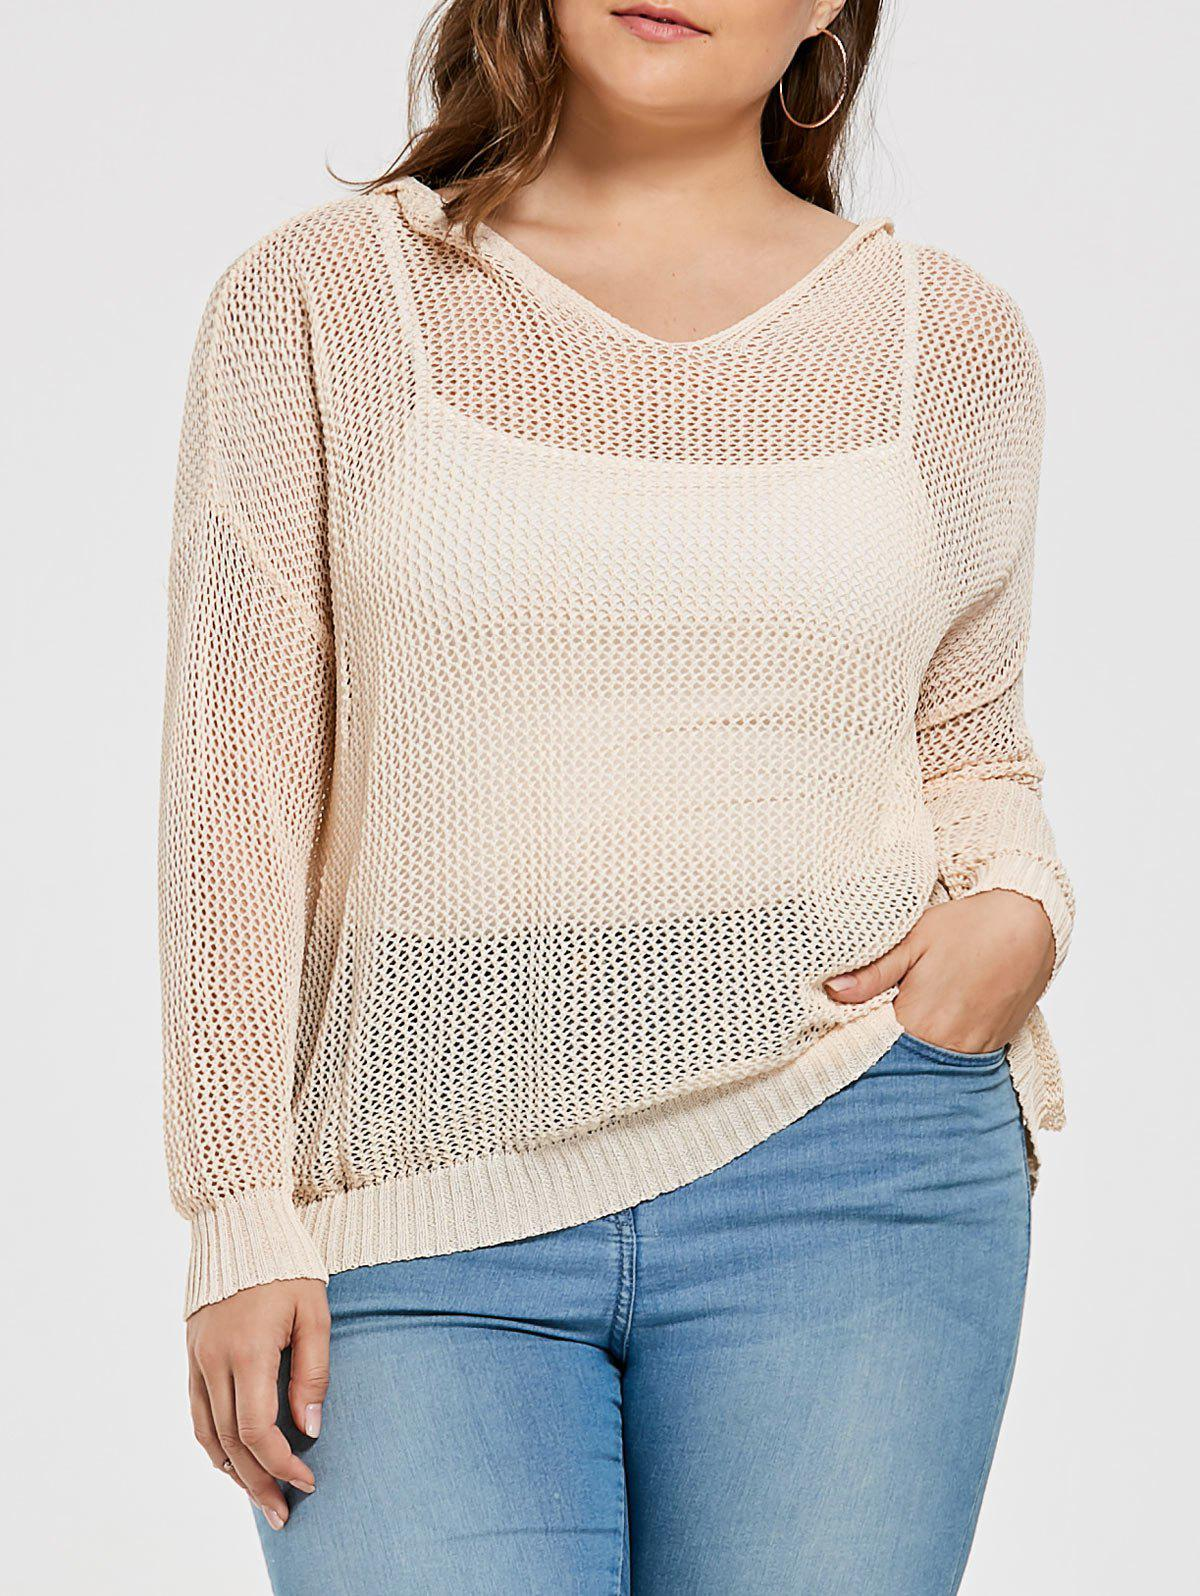 2017 Plus Size Sheer Crochet Knit Hooded Sweater OFF WHITE ONE ...